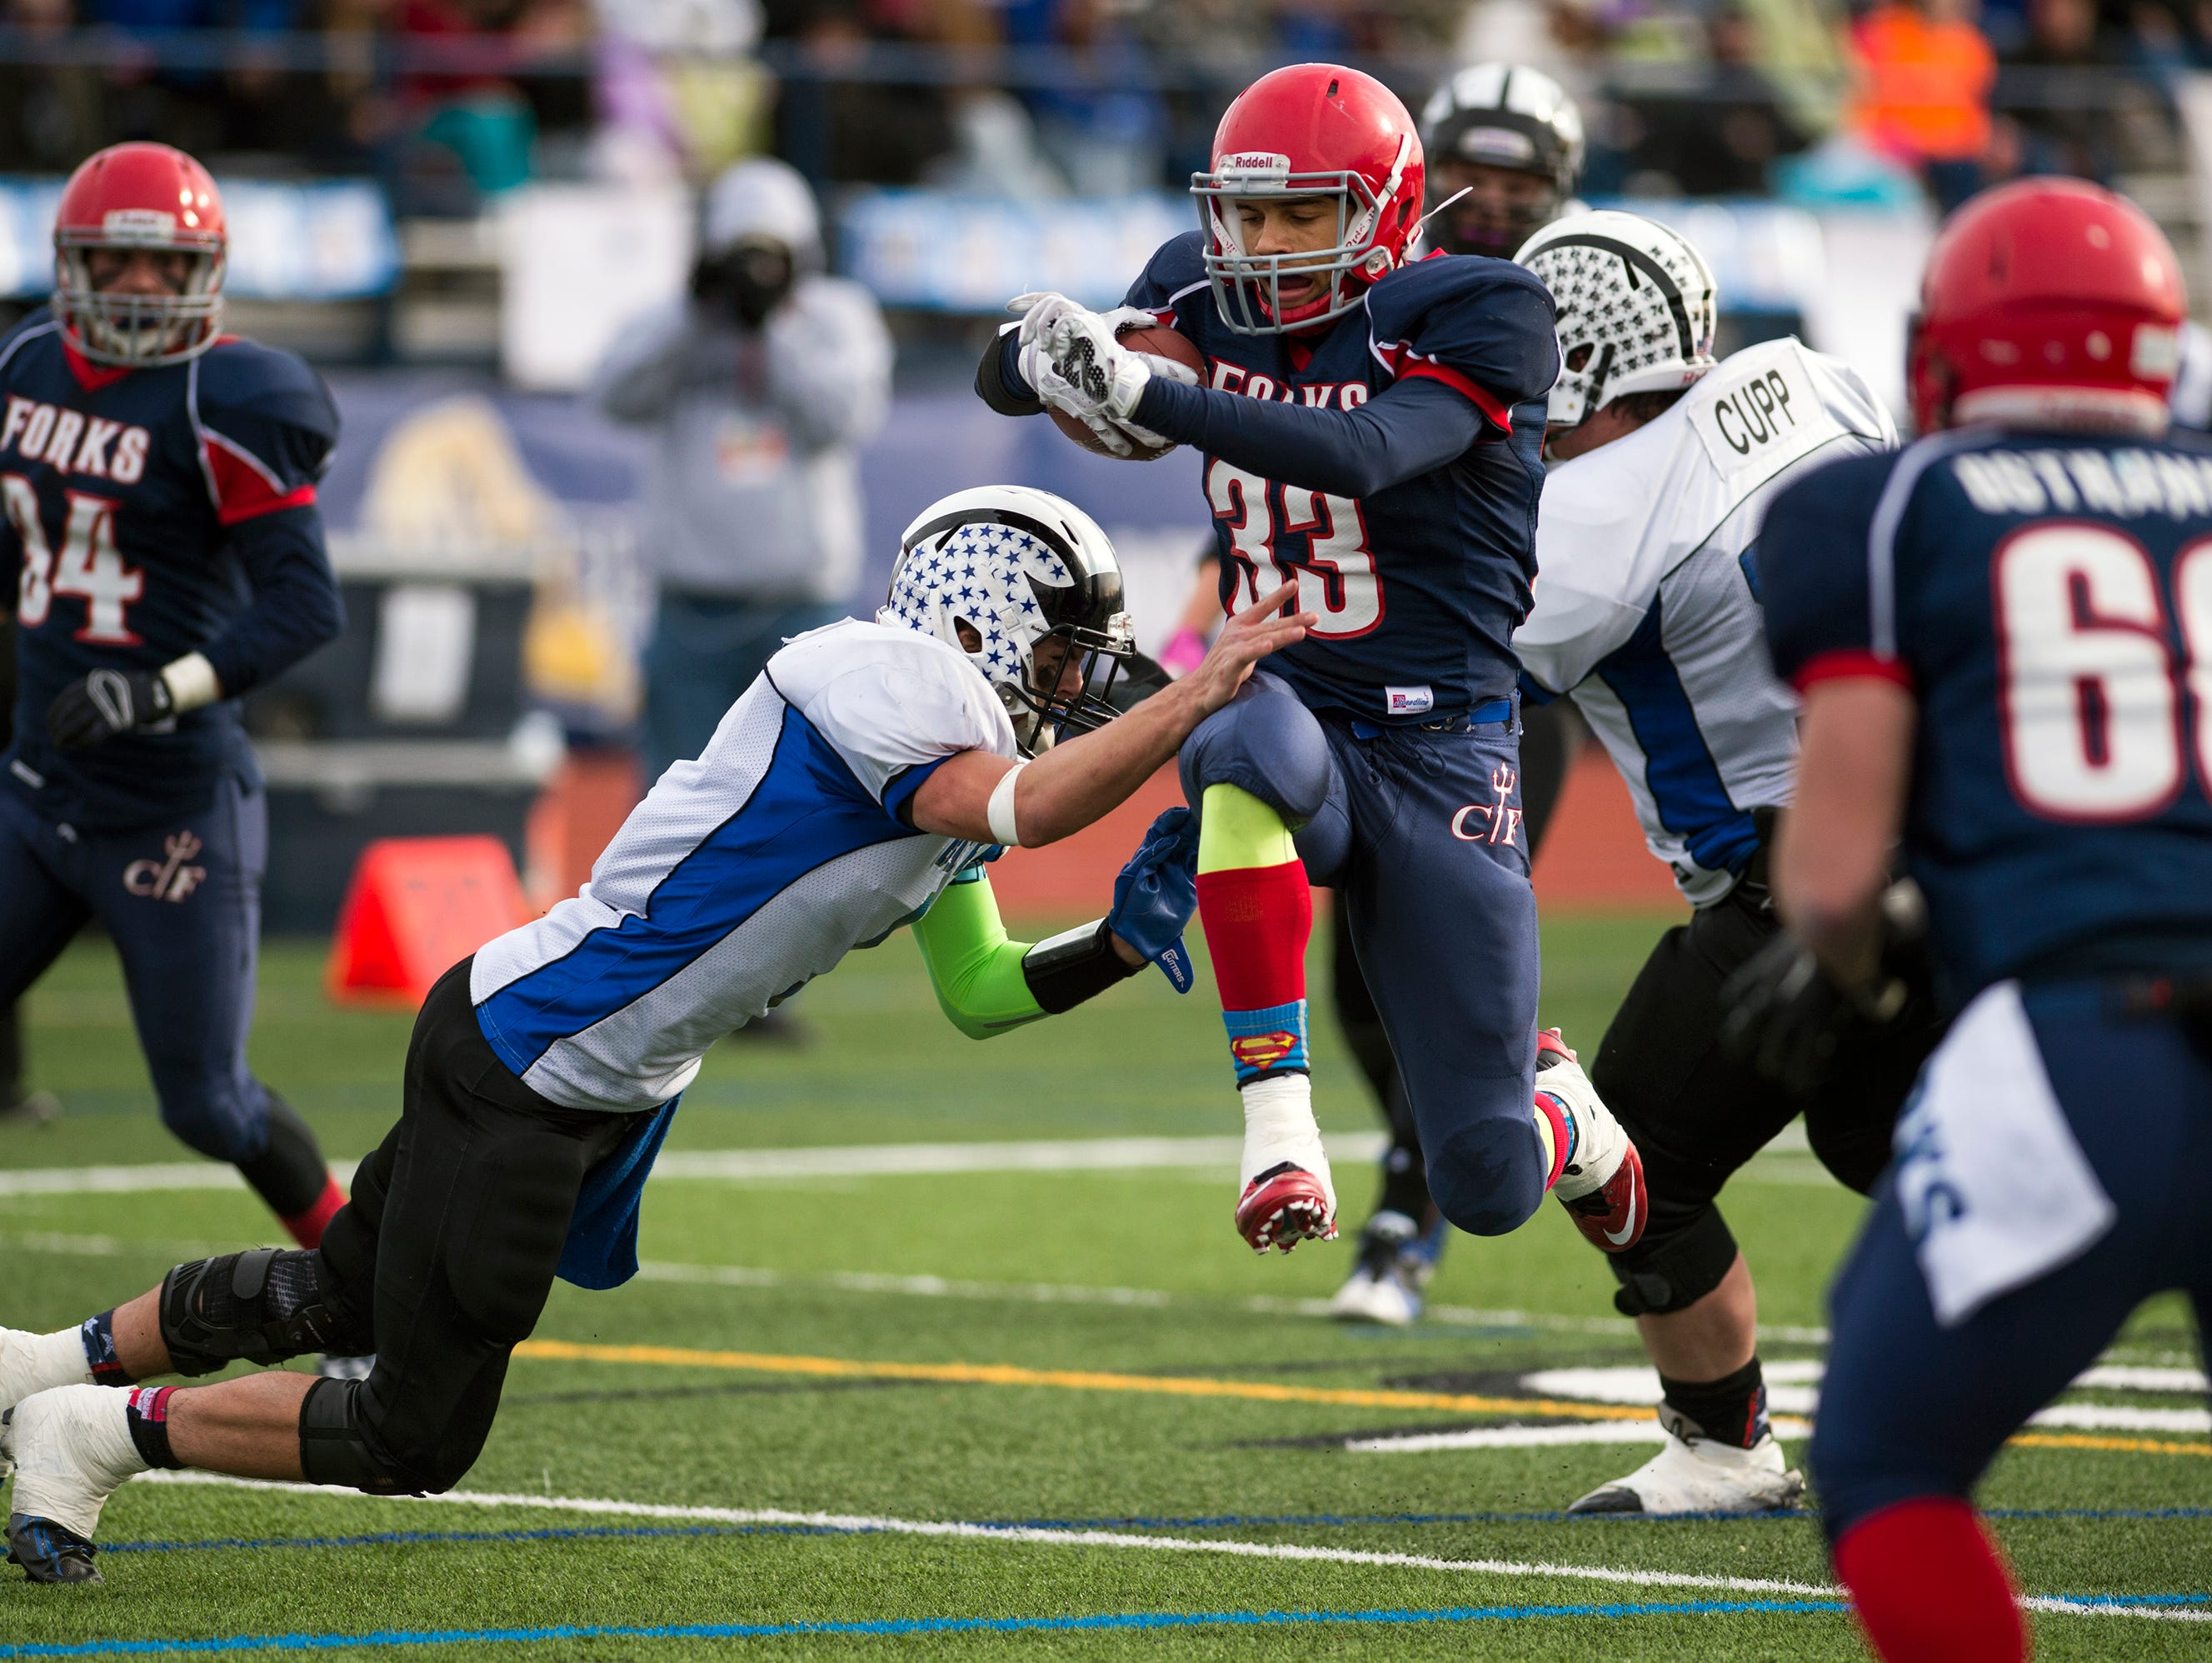 Chenango Forks running back LJ Watson hurdles past a Bath defender on his way to the endzone in the second quarter of the Class C state playoff semifinals on Saturday, Nov. 21, 2015.